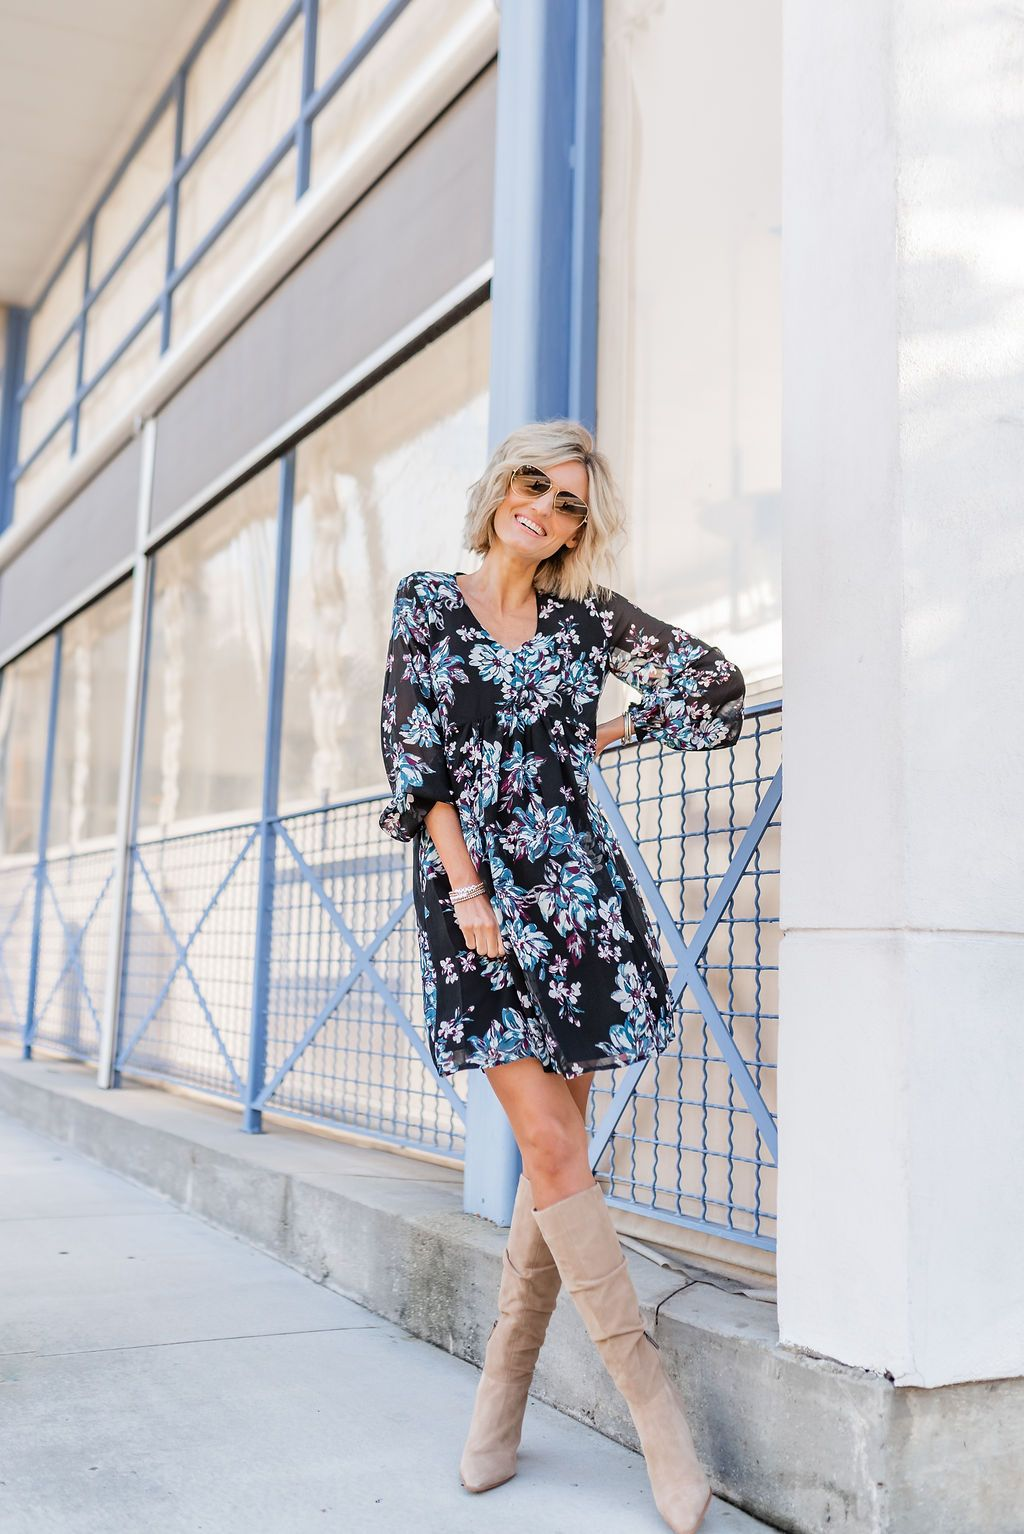 Fall Dresses Under 60 With Walmart Loverly Grey In 2021 Fall Dresses Dresses Purple Midi Dress [ 1534 x 1024 Pixel ]